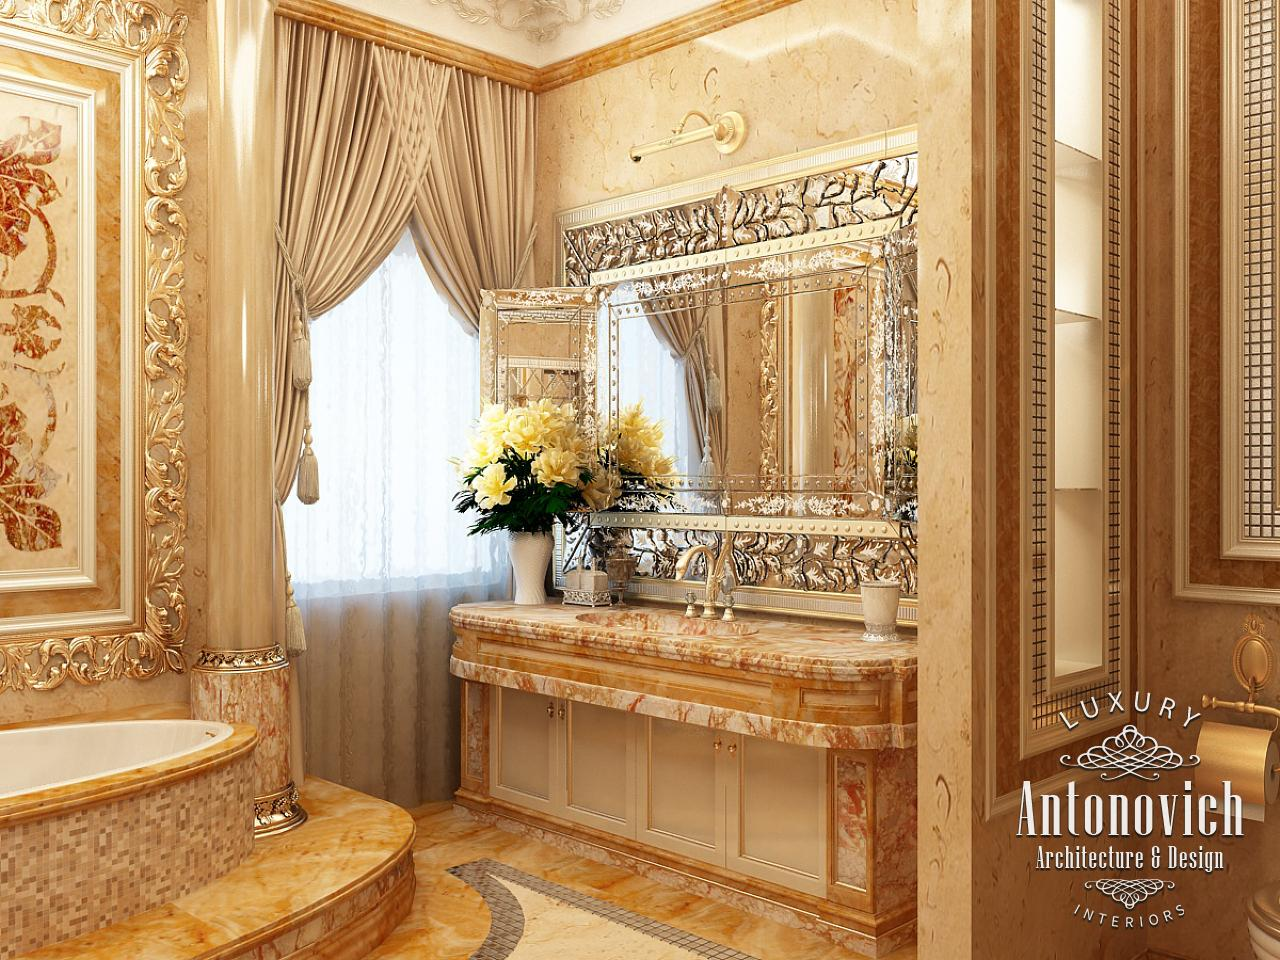 Luxury Antonovich Design Uae Bathroom Design Dubai Antonovich Design: bathroom design jobs dubai